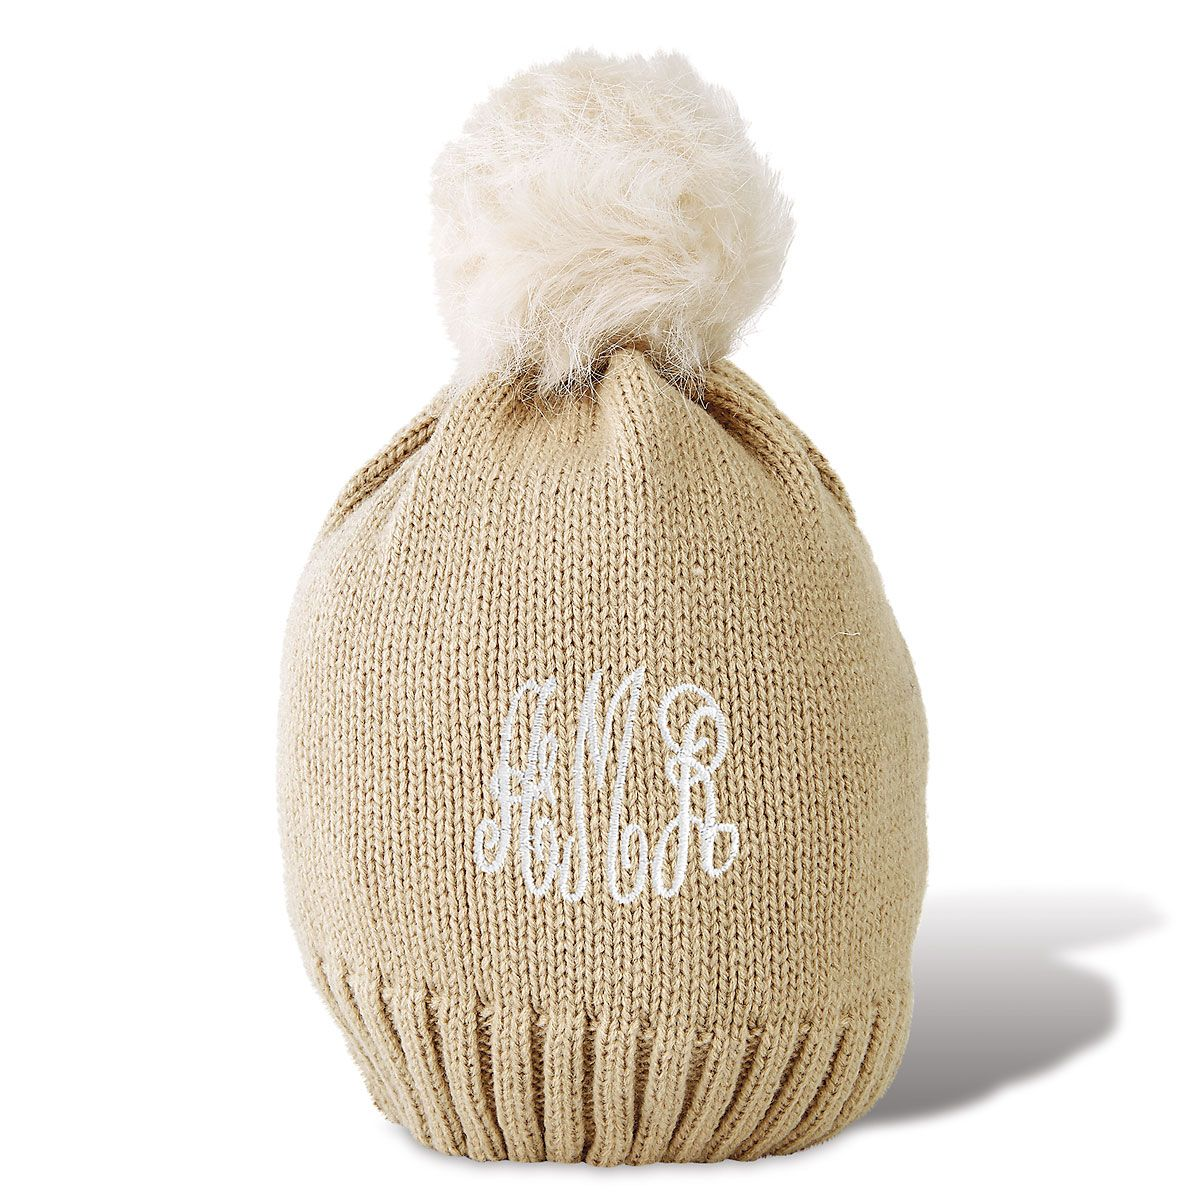 Personalized Winter Beanies